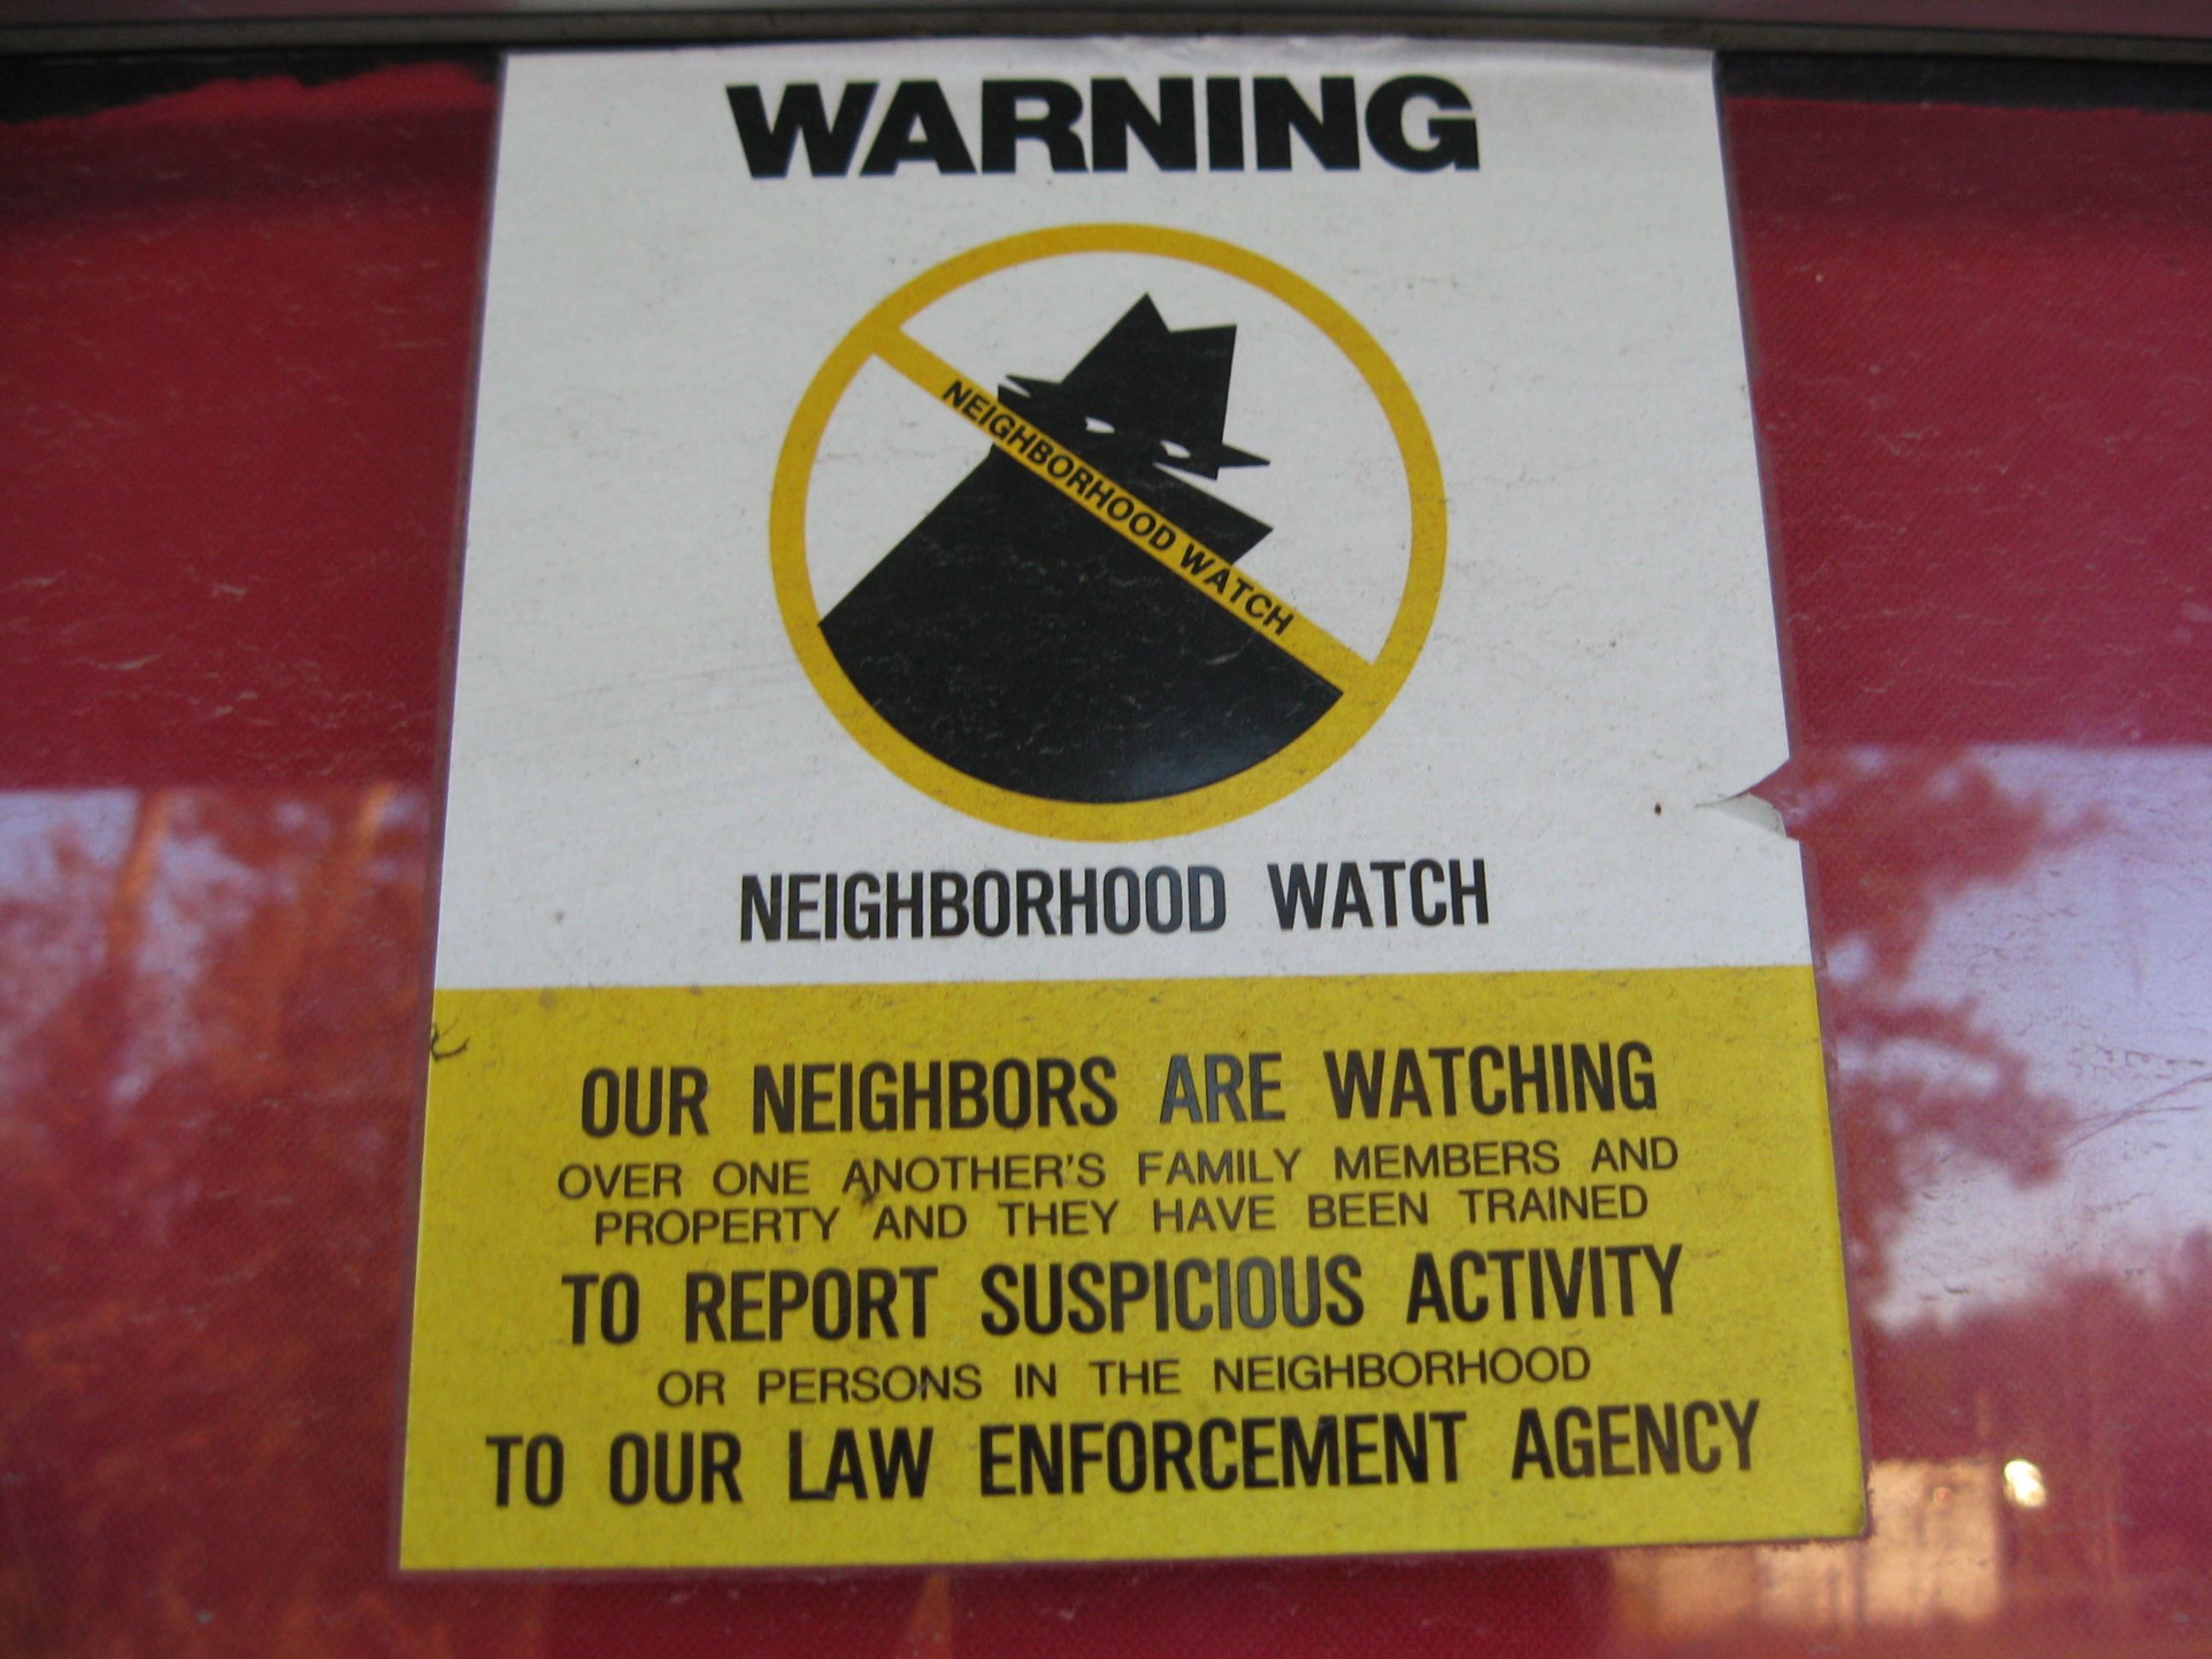 Caring About Our Neighbors As Expected >> Neighborhood Watch Wikipedia